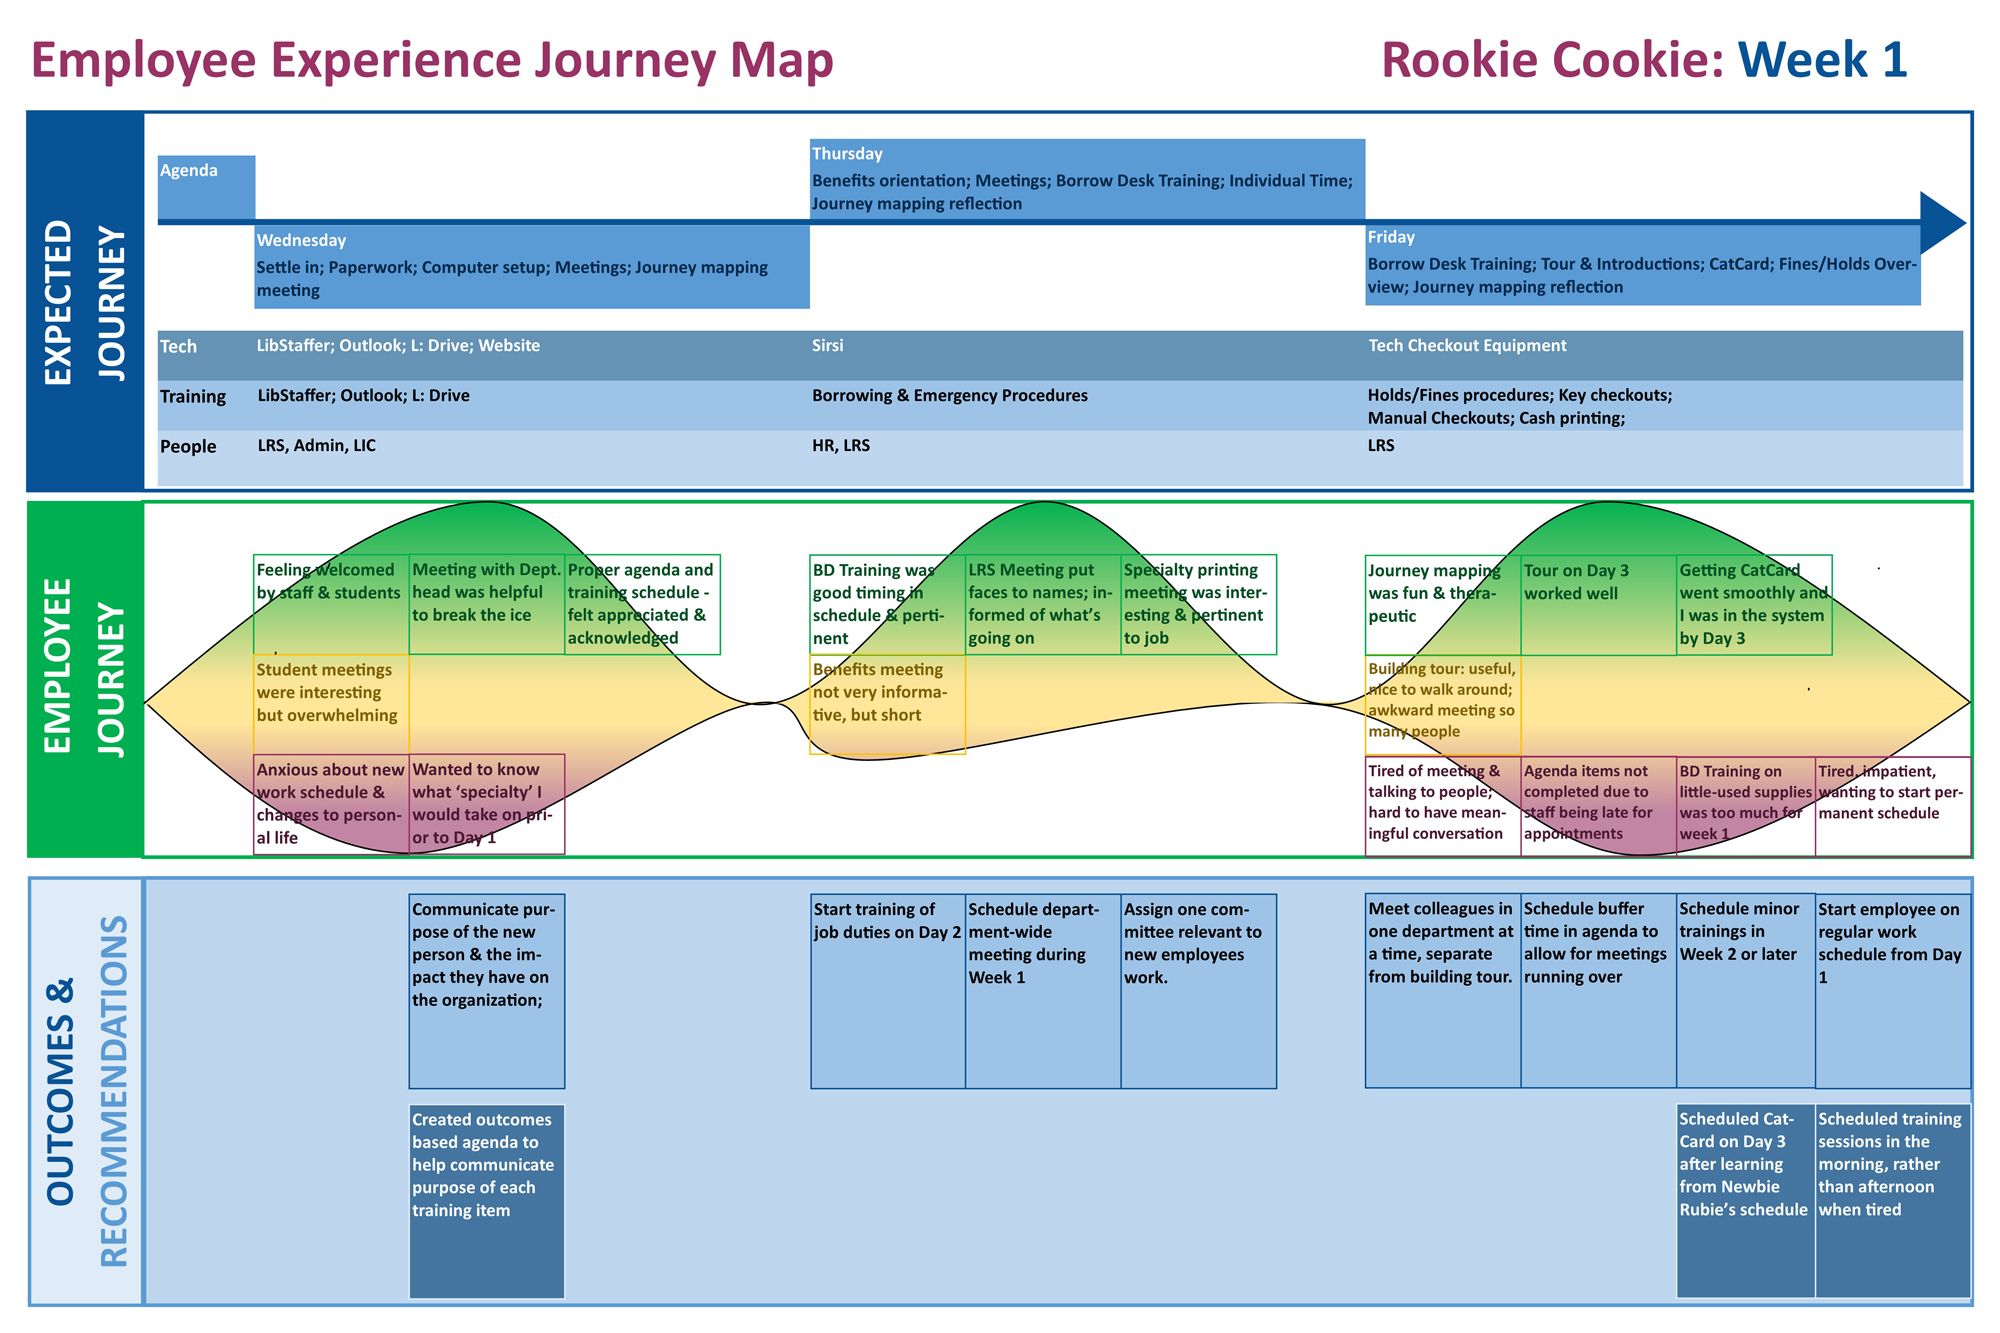 Improving Onboarding With Employee Experience Journey